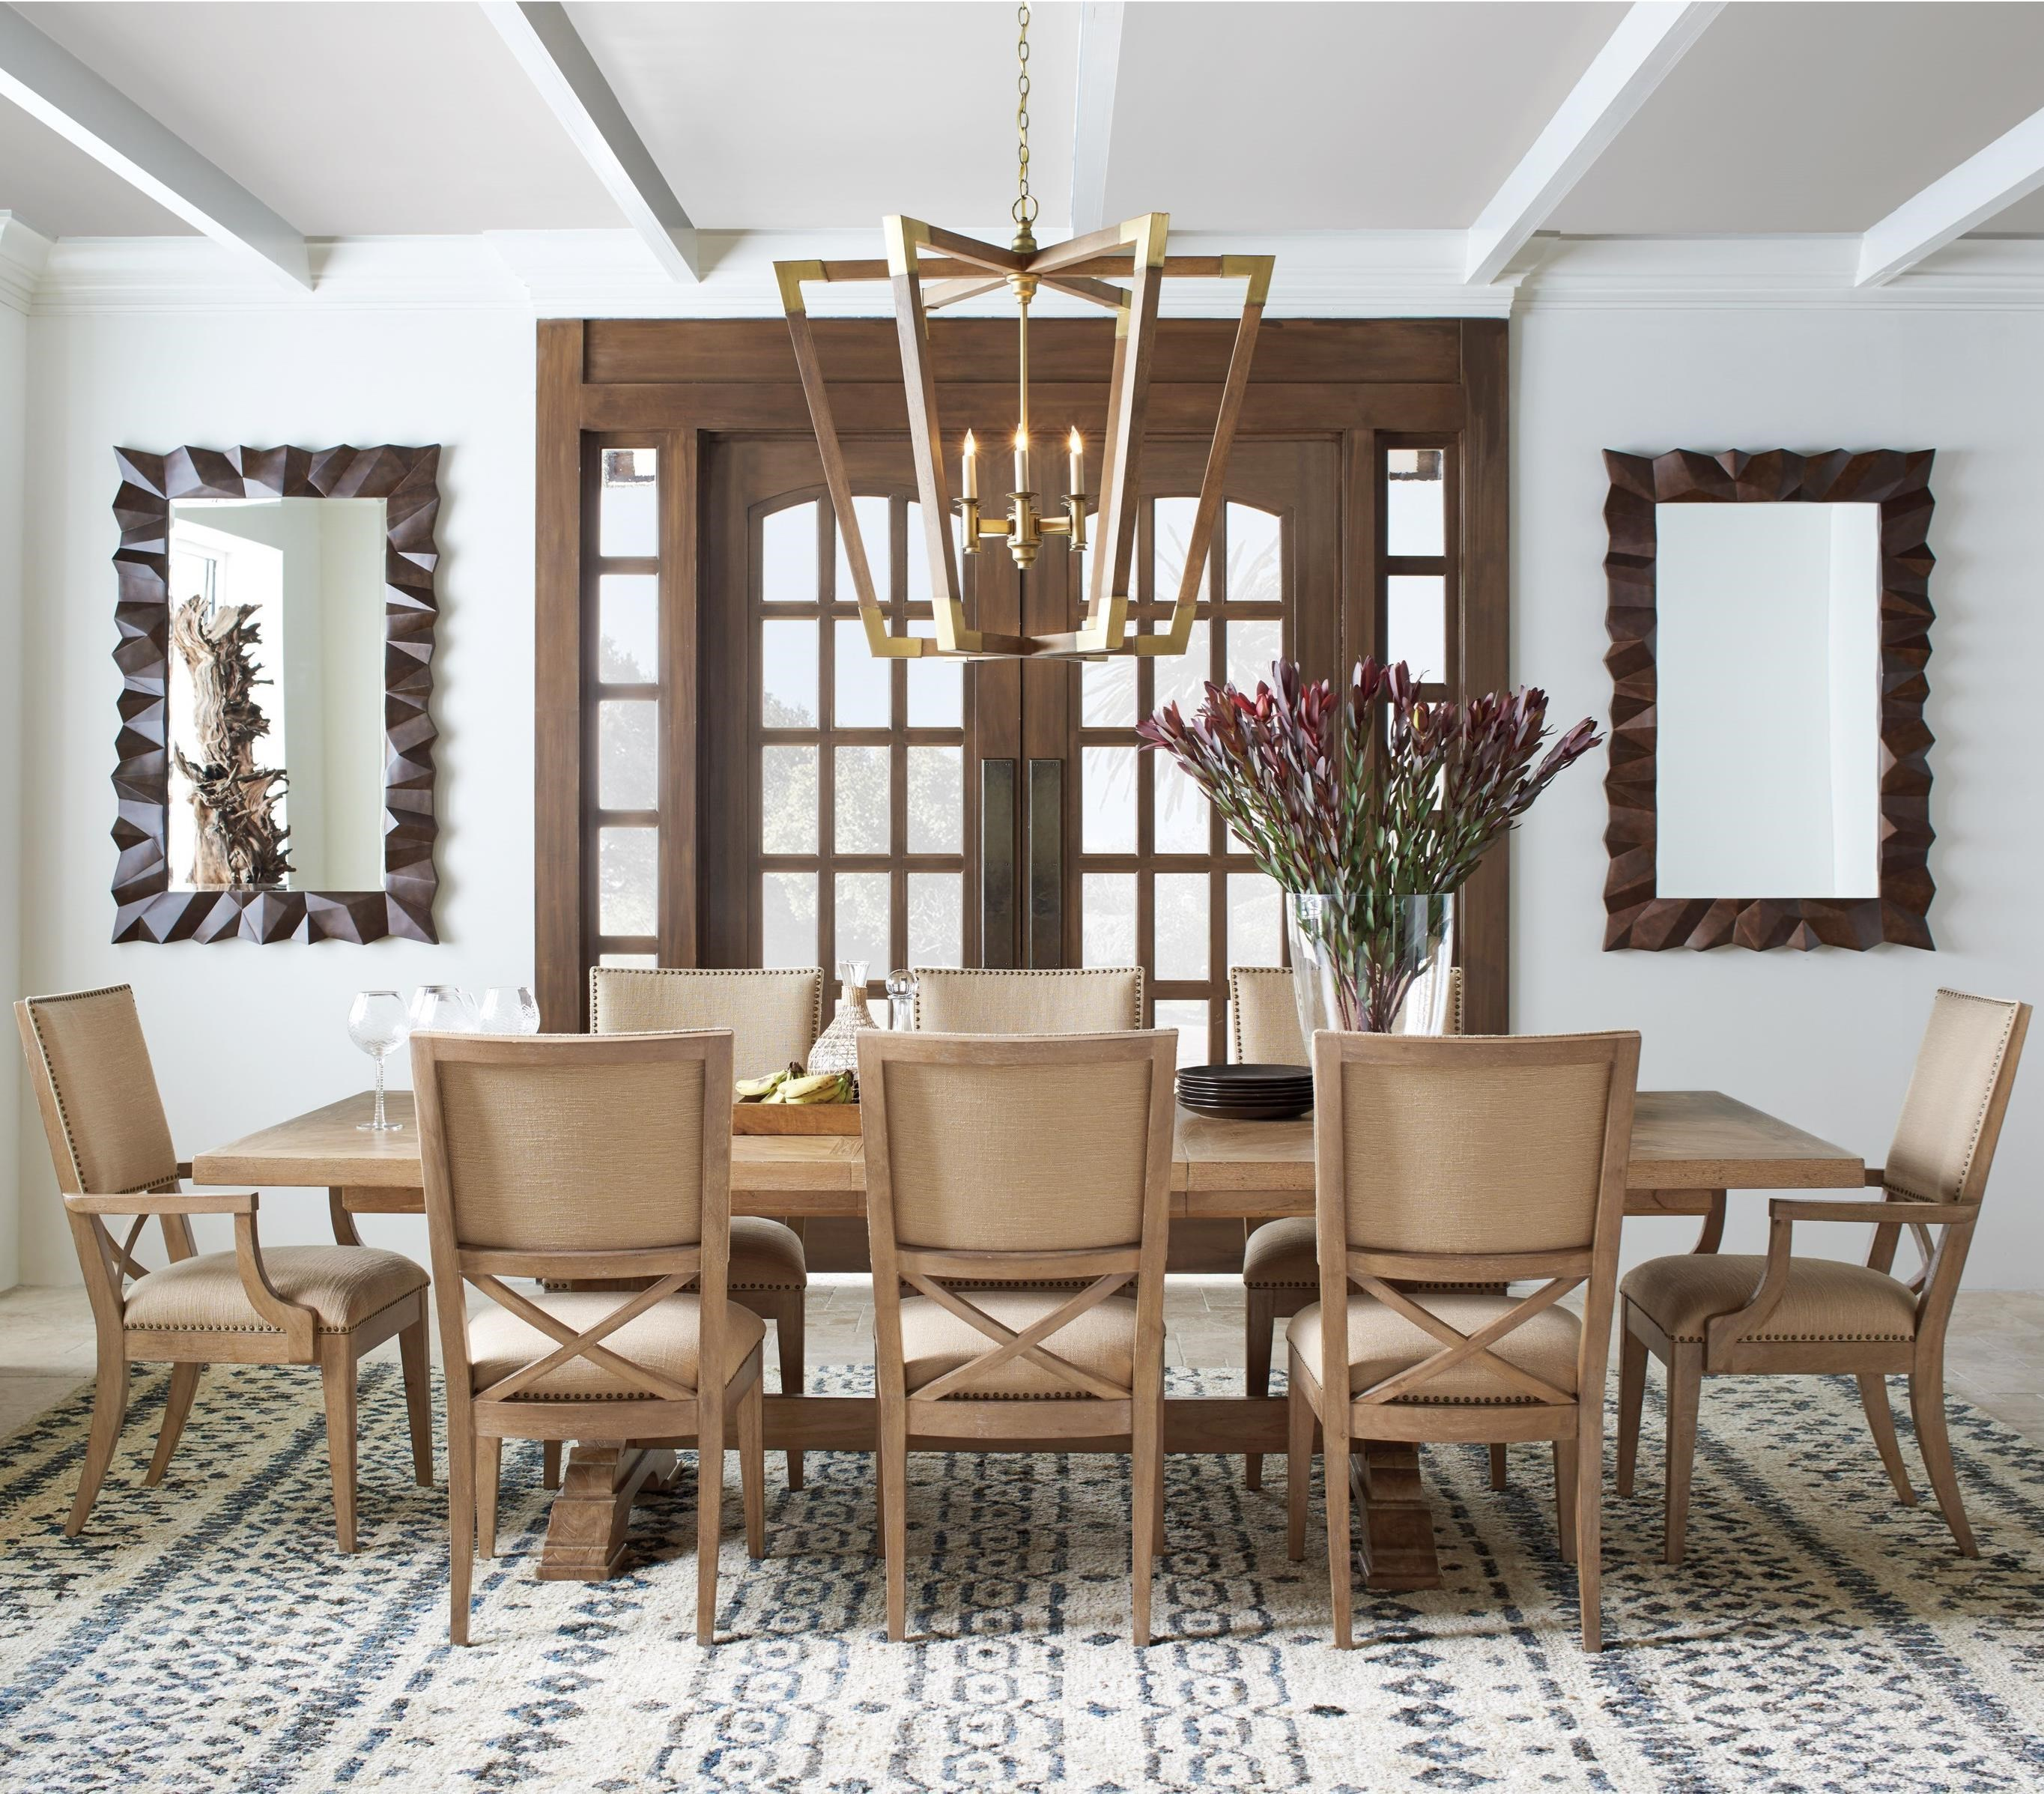 Los Altos 9 Pc Dining Set by Tommy Bahama Home at Baer's Furniture